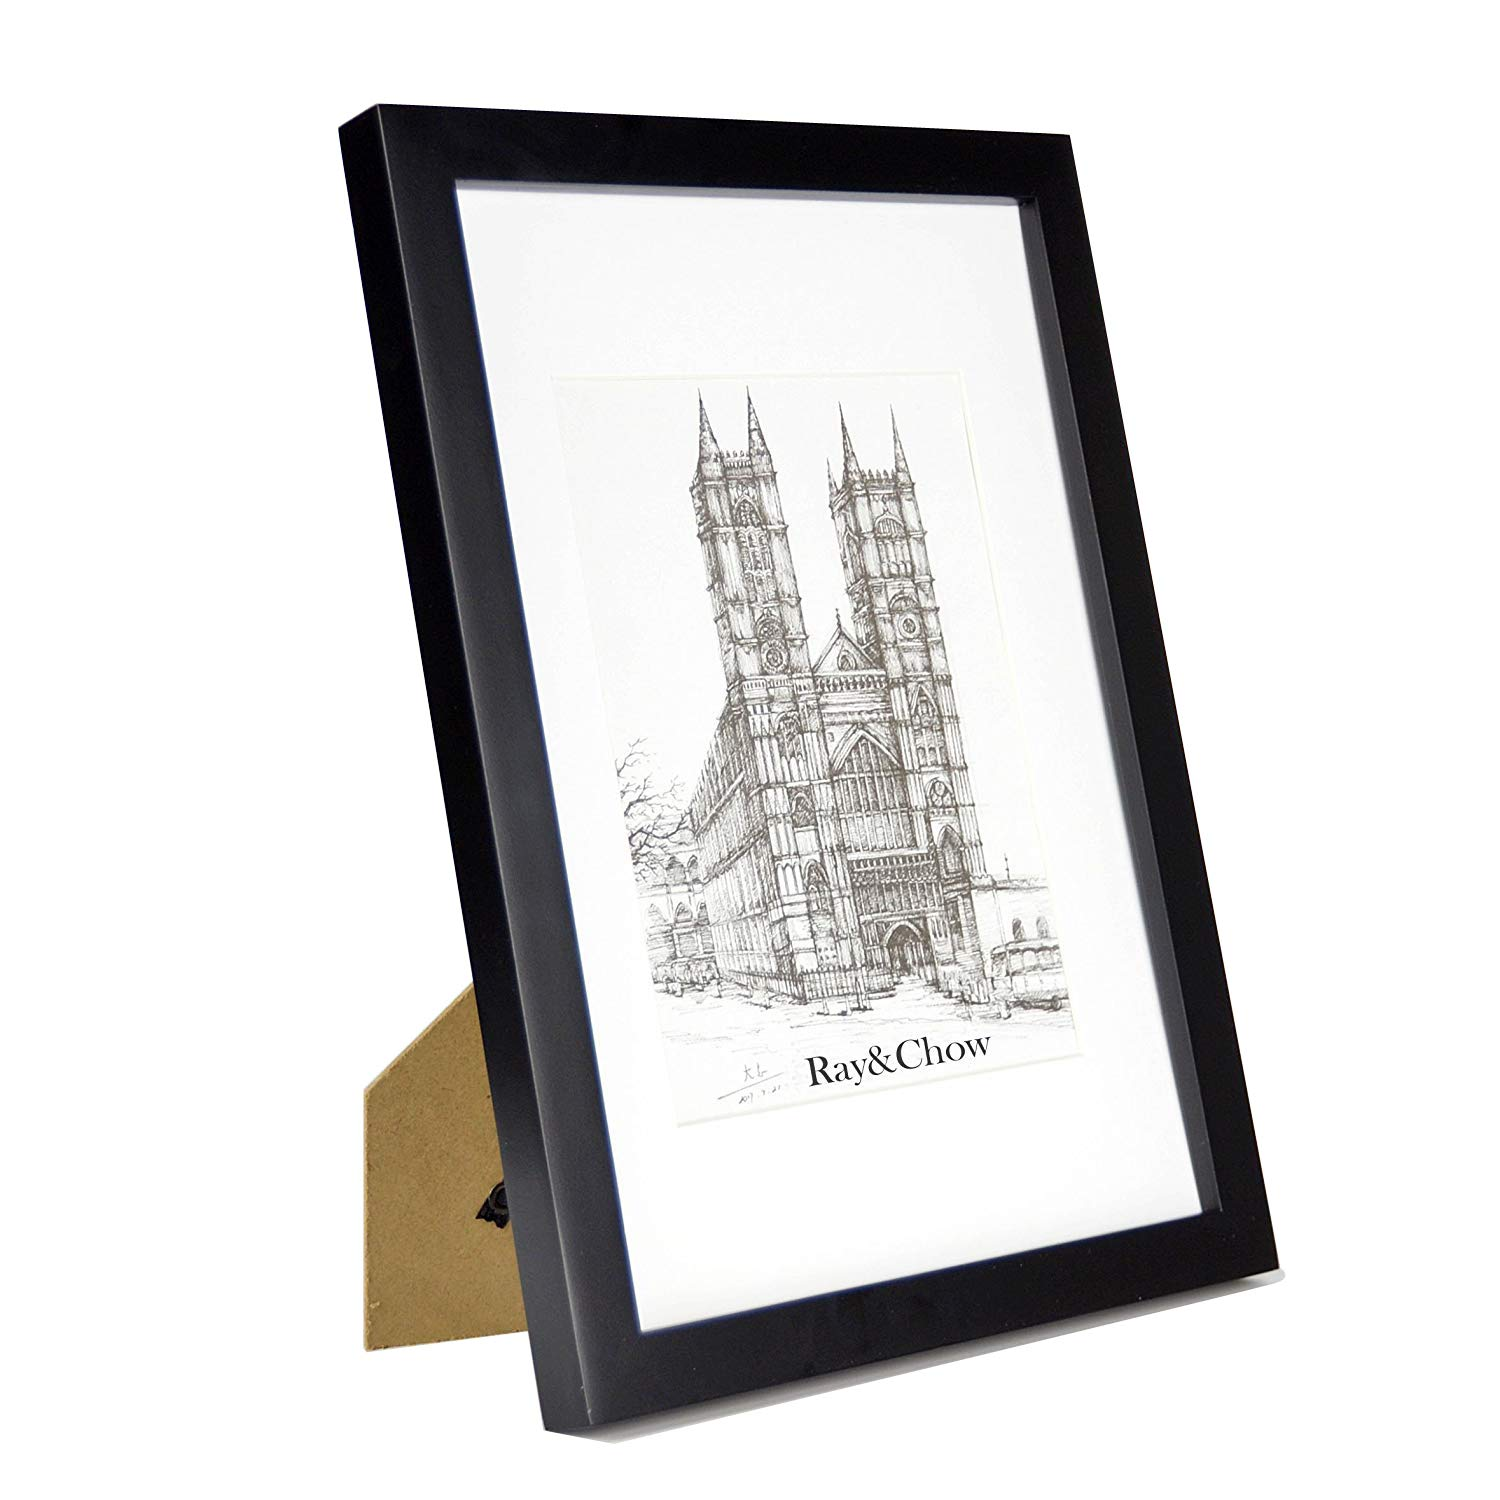 Ray & Chow A4 Black Picture Frame - Solid Wood - Glass Window - with Picture Mat for 6x8 Photo - Frame Width 2cm